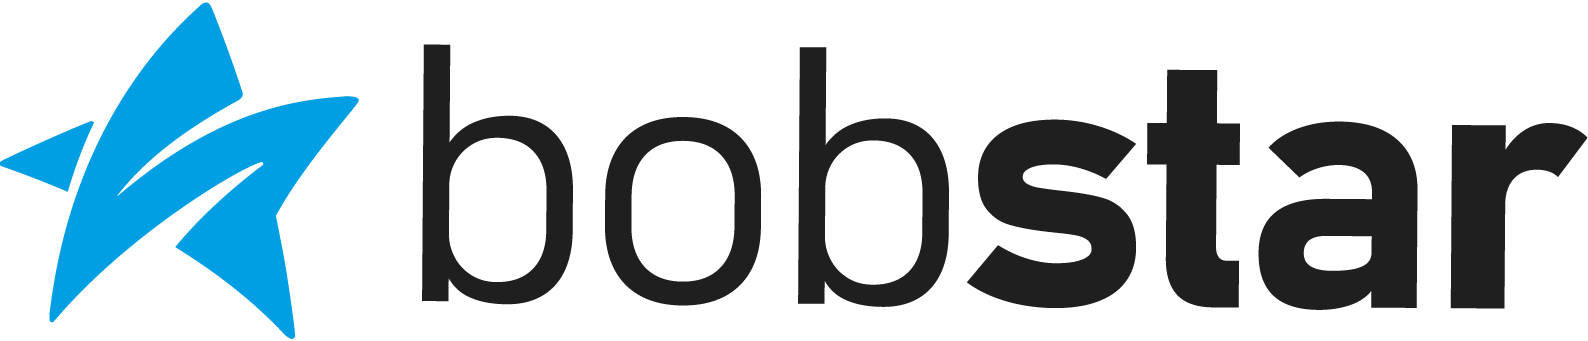 bobstar-logo